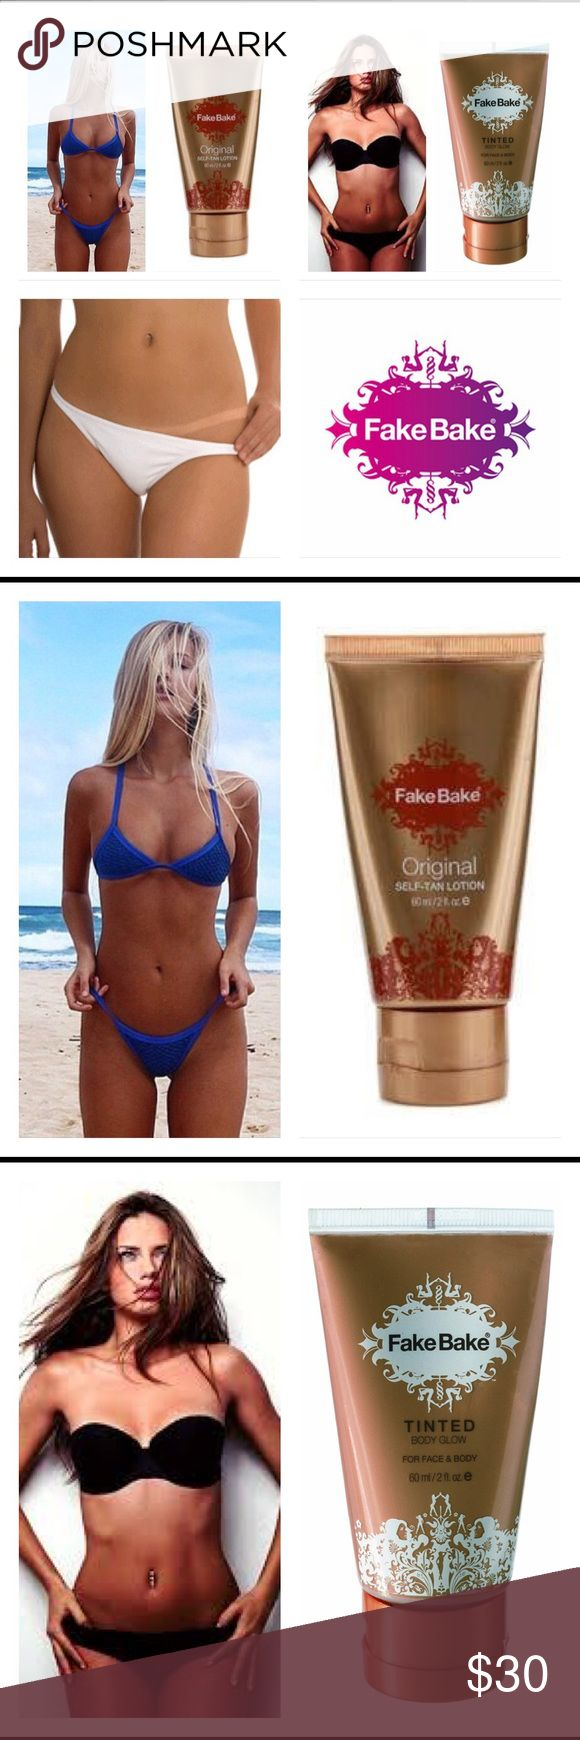 Fake Bake Original Lotion & Tinted Glow Set Includes Original Self-Tanning Lotion & Tinted Glow Contains a unique blend of iols and natural ingredients Get a perfect tan with Fake Bakes richness in color No damaging side effects of the sun Easy goof-proof application Ultimate in self-tanning lotions Get an all-over sunless glow with Fake Bake Tinted Body Glow This tinted, bronze, lightweight moisturizer instantly soaks into the skin Now you can enjoy an instant bronze without the permanence…